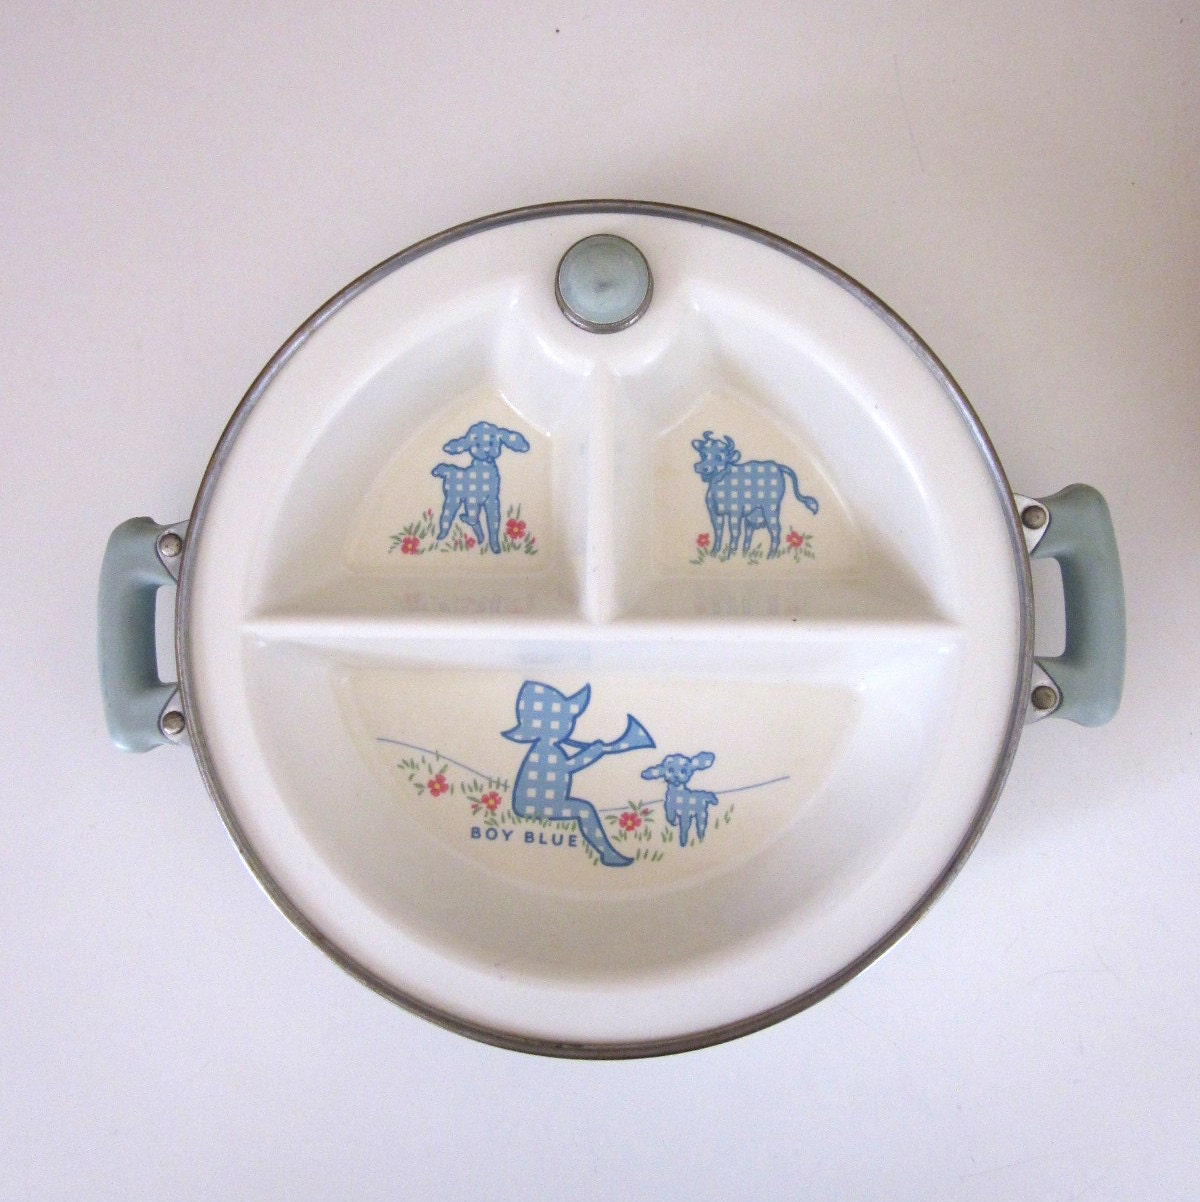 Vintage Divided Baby Food Dish In Warmer Little Boy Blue Excello Baby Bowls & Plates